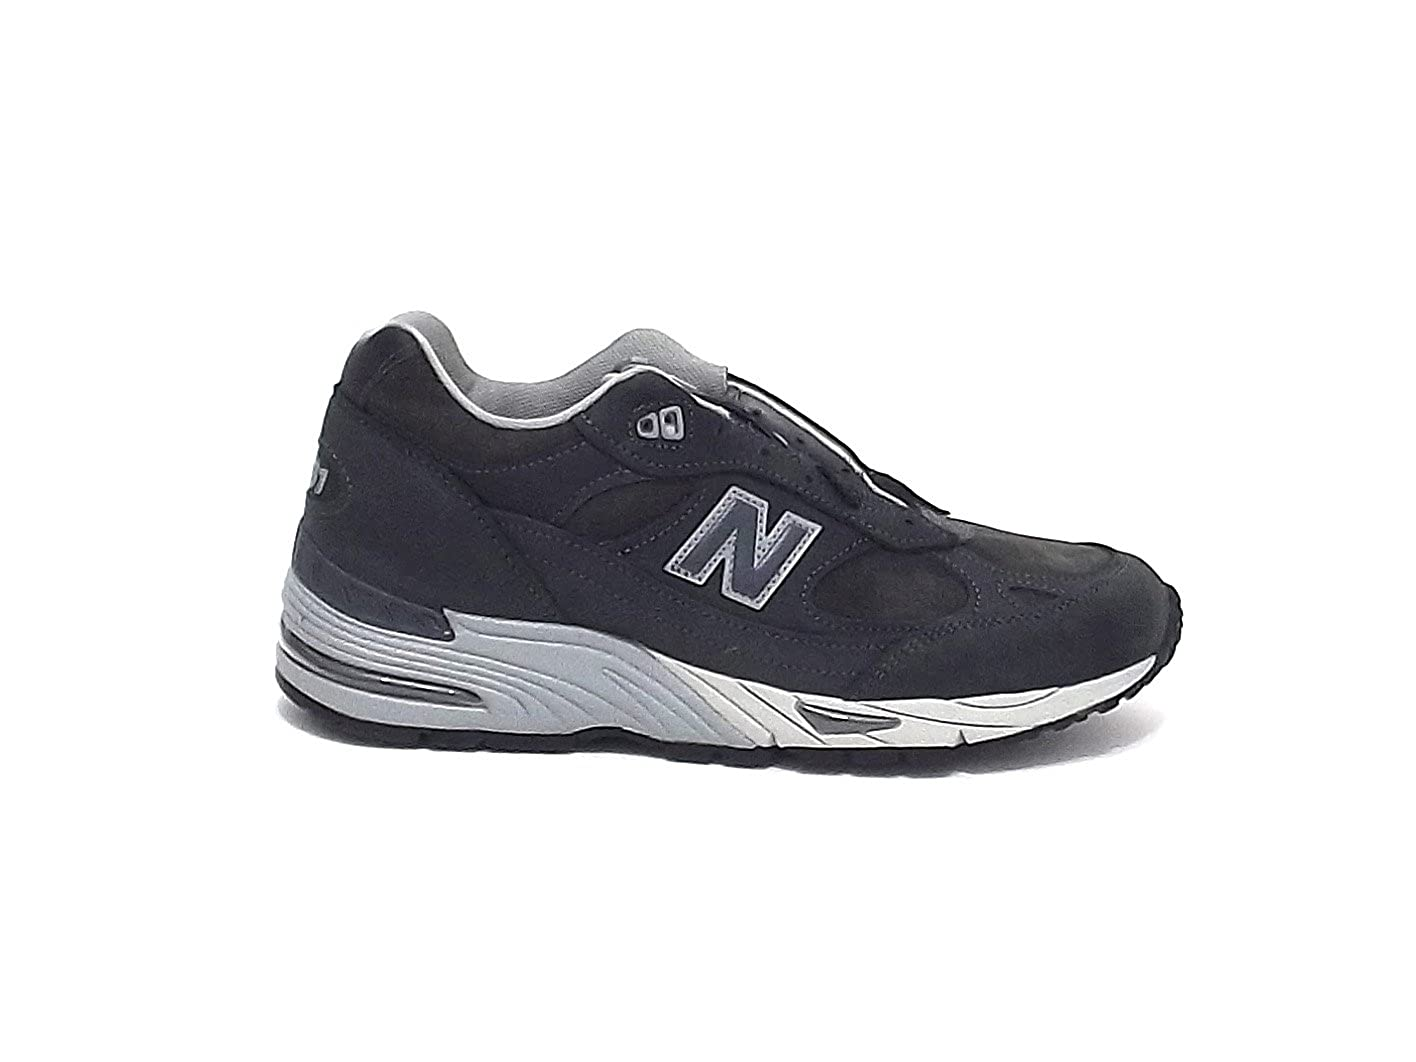 Turnschuhe New Balance 991 in pelle e suede grau Anthracite